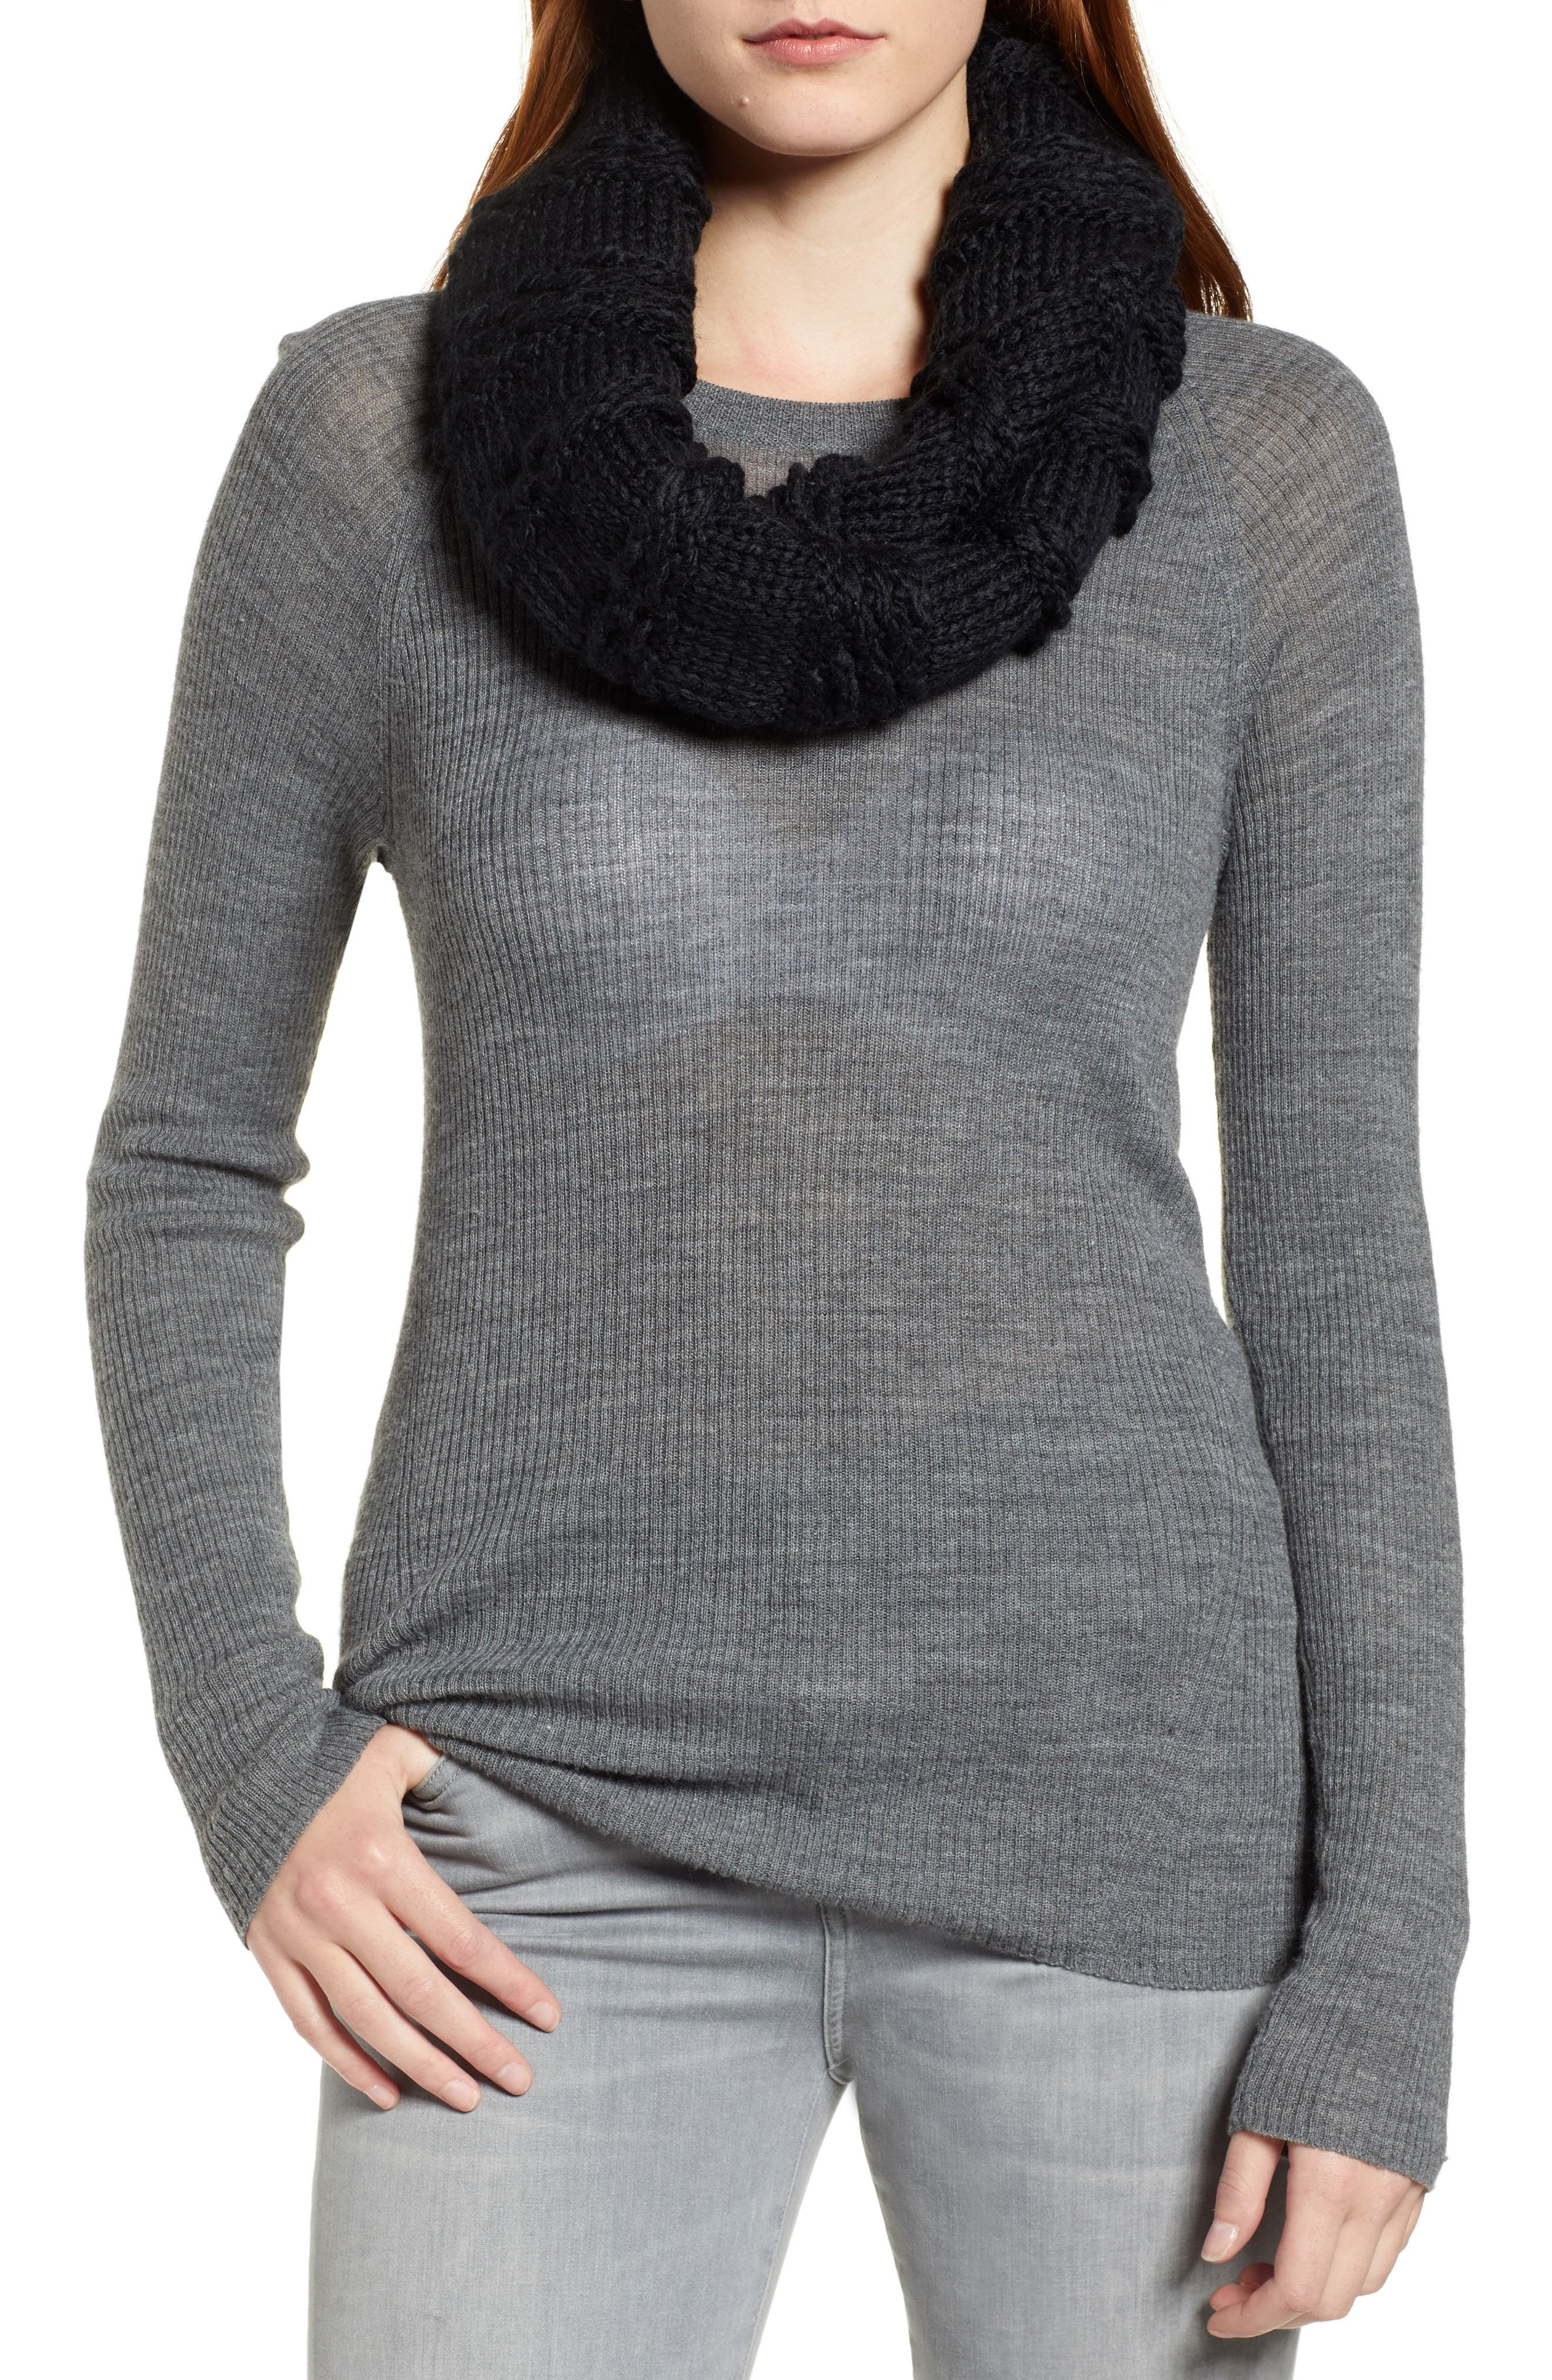 Chunky Neck Warmer,                             Alternate thumbnail 4, color,                             BLACK